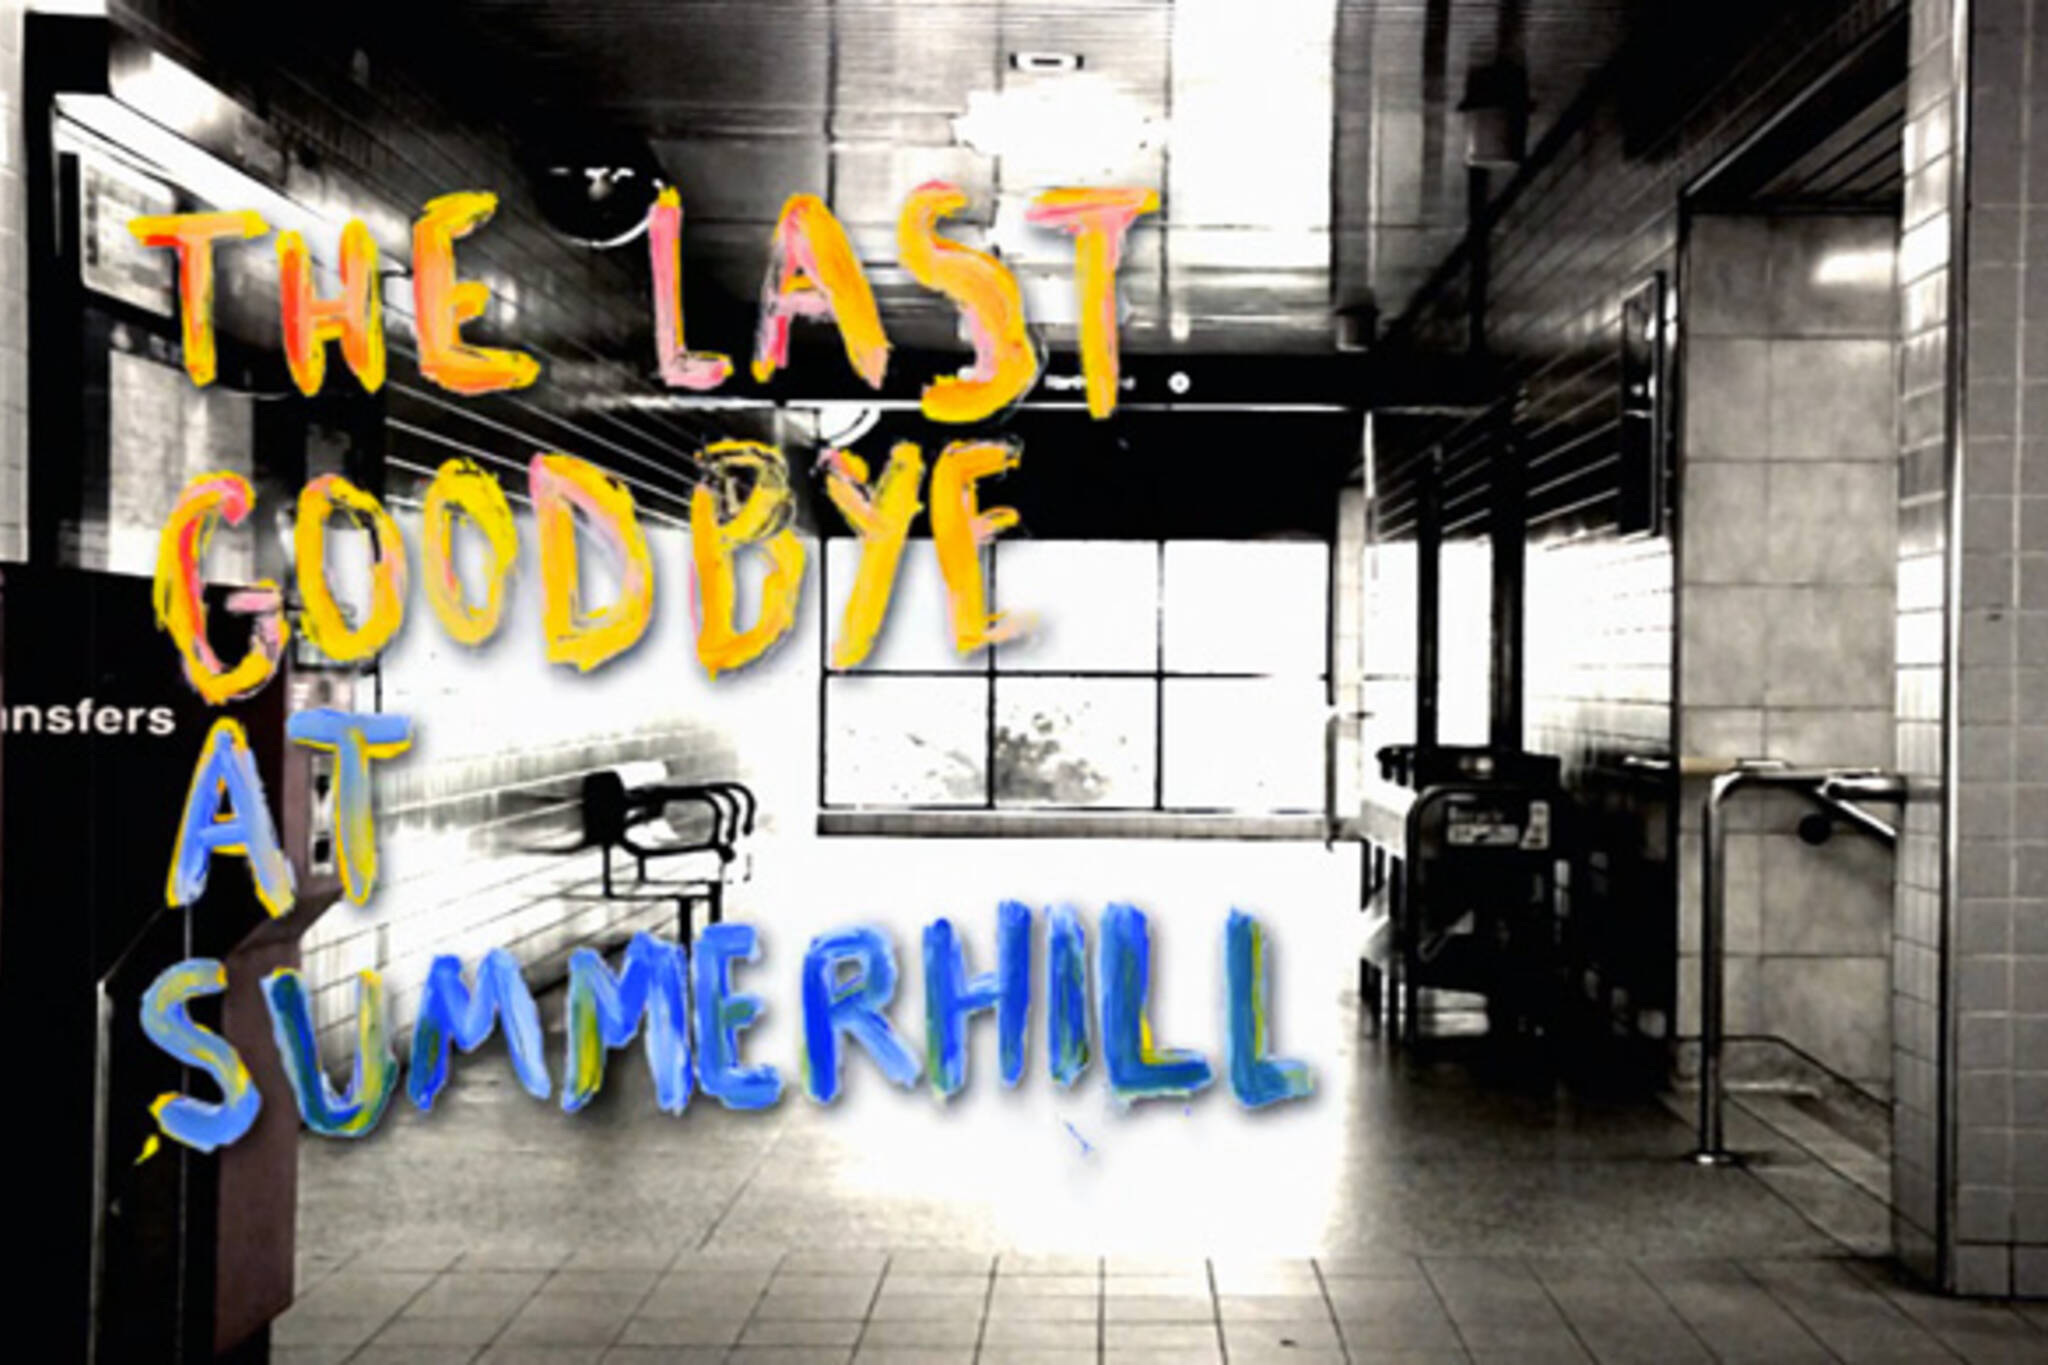 Last Good Bye at Summerhill Station